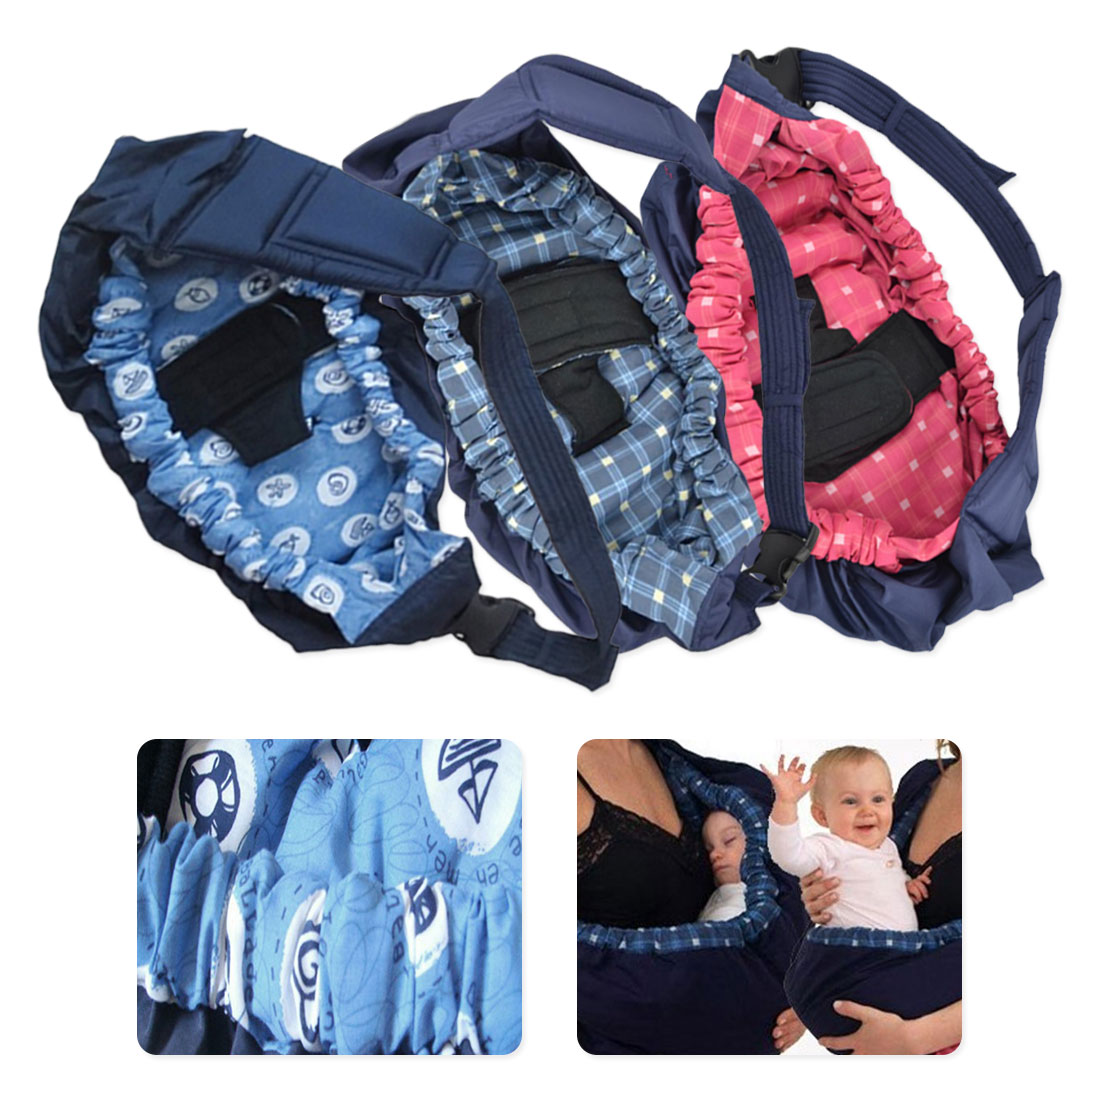 Baby Edle Newborn Front Carrier Sling Infant Soft Wrap Swaddling Kid Nursing Bag Pouch Breastfeed Feeding Carry Bag